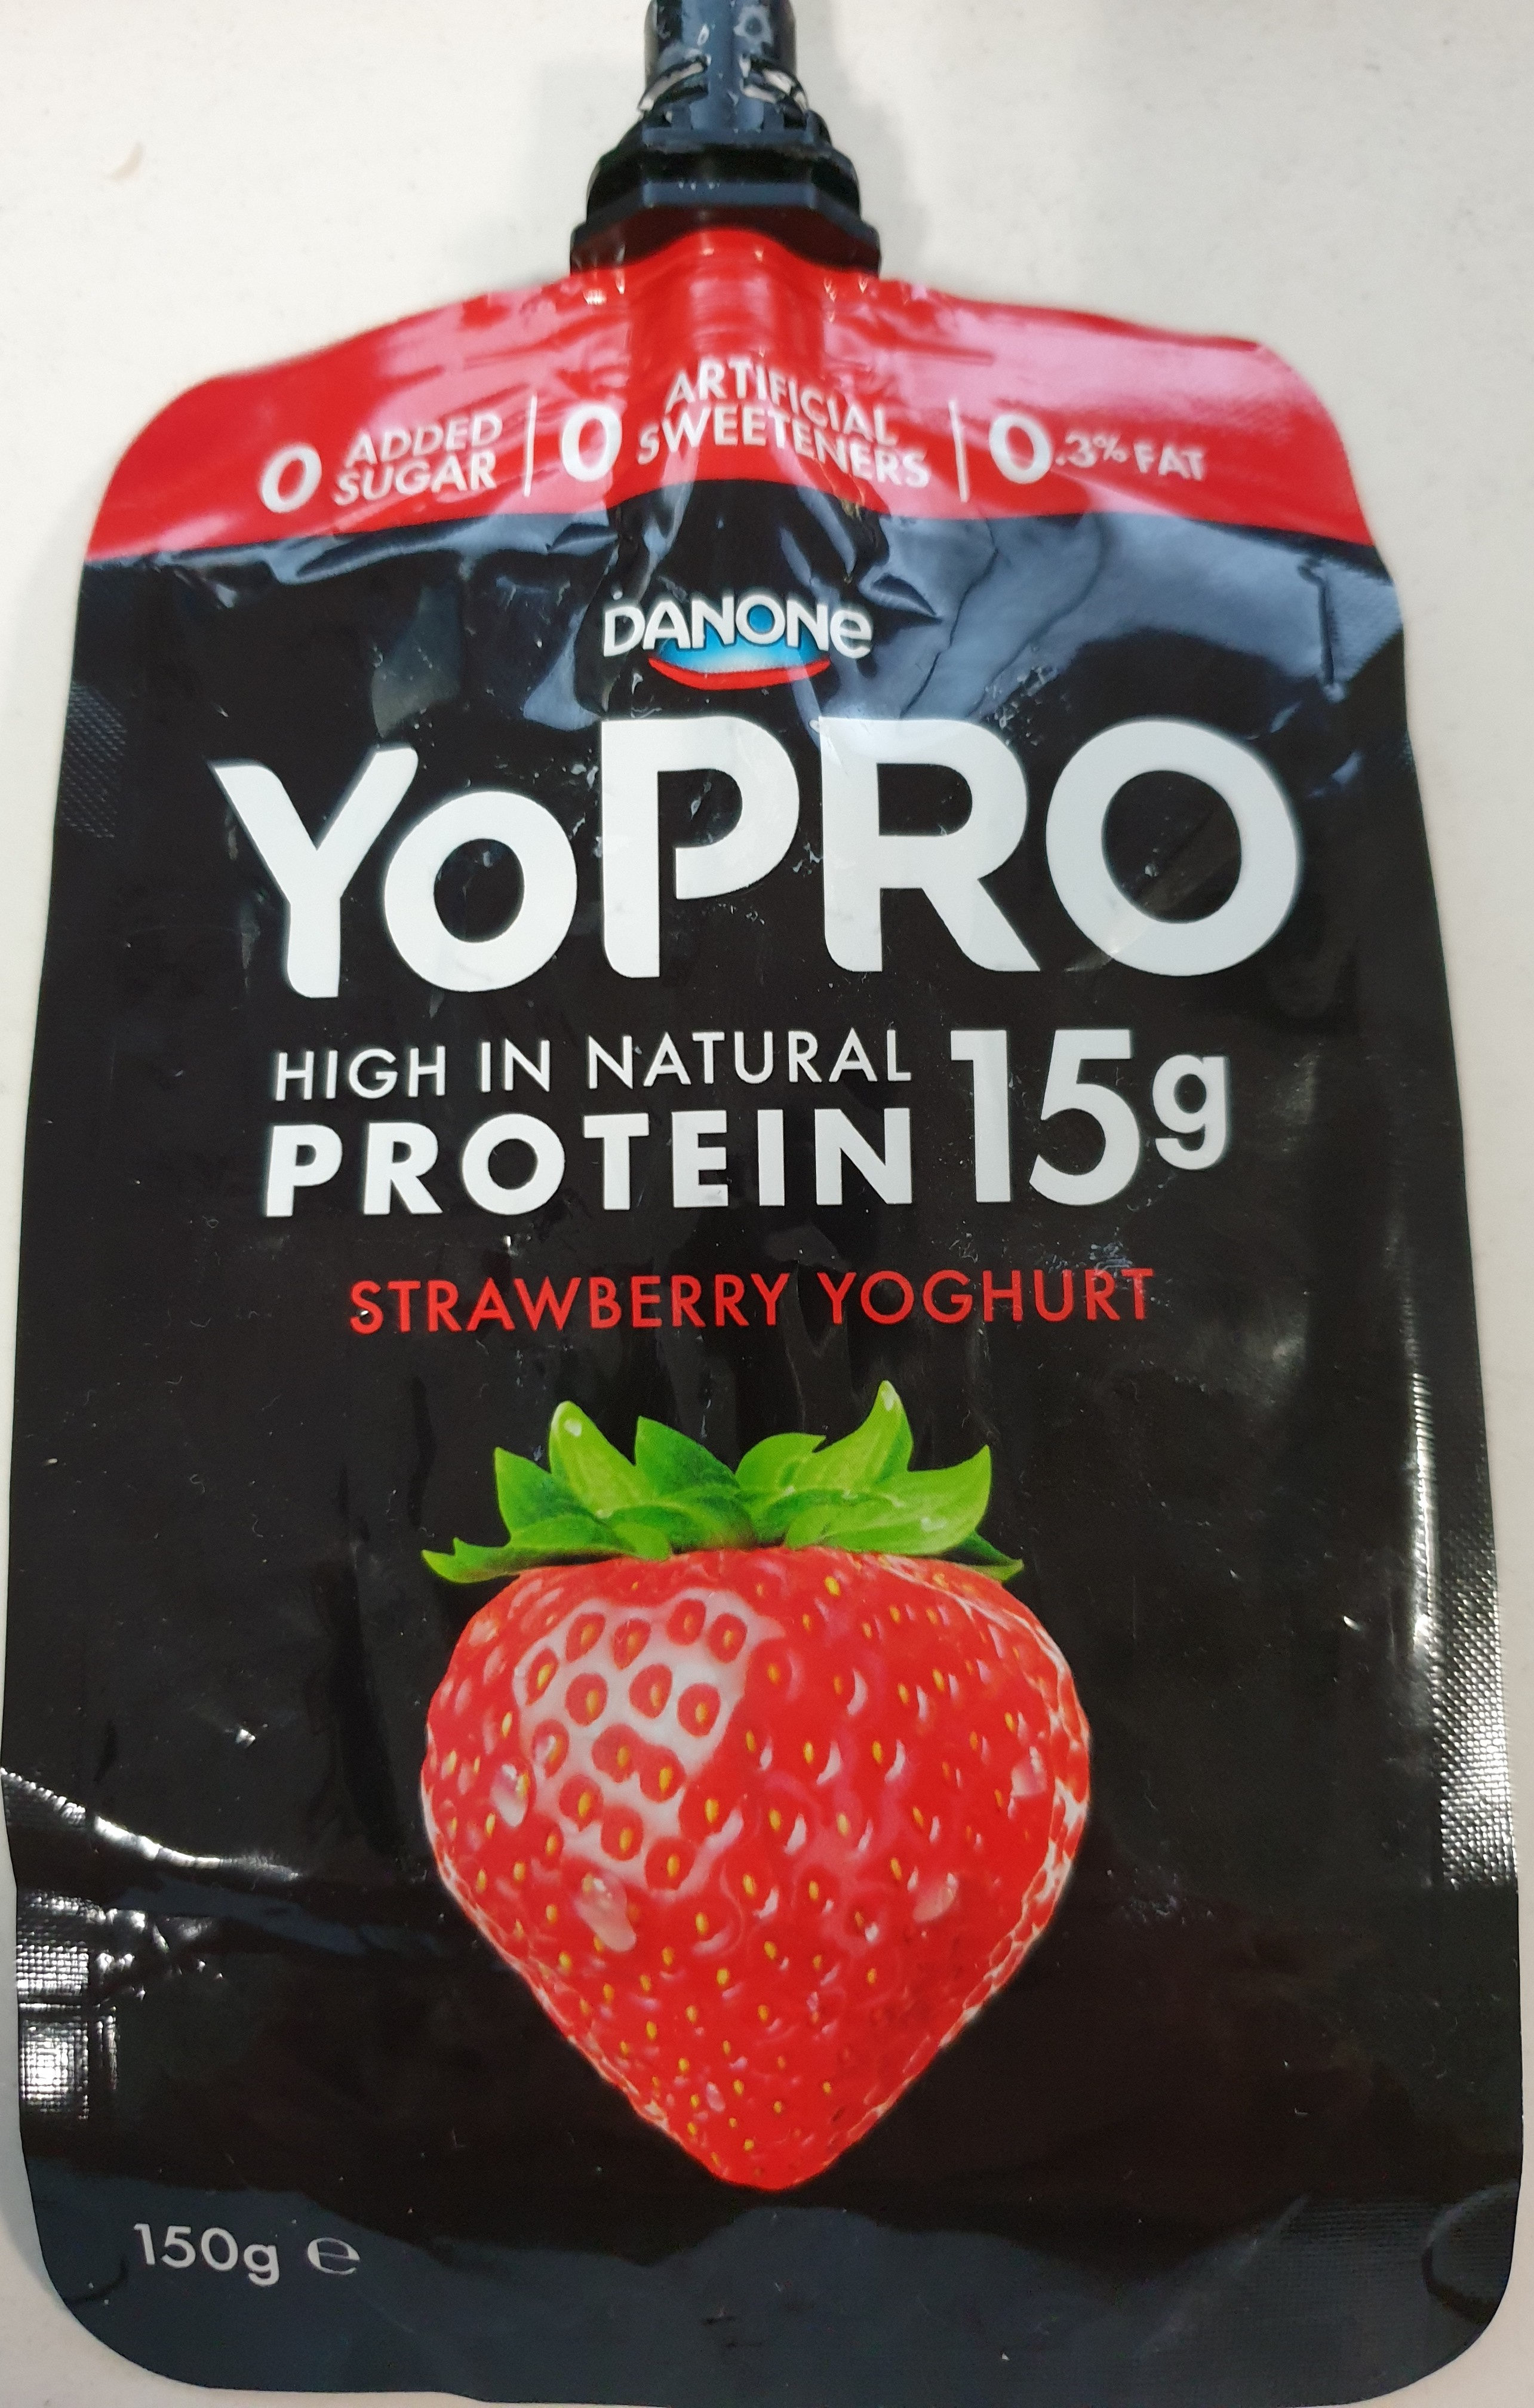 YoPro strawberry yoghurt - Product - en